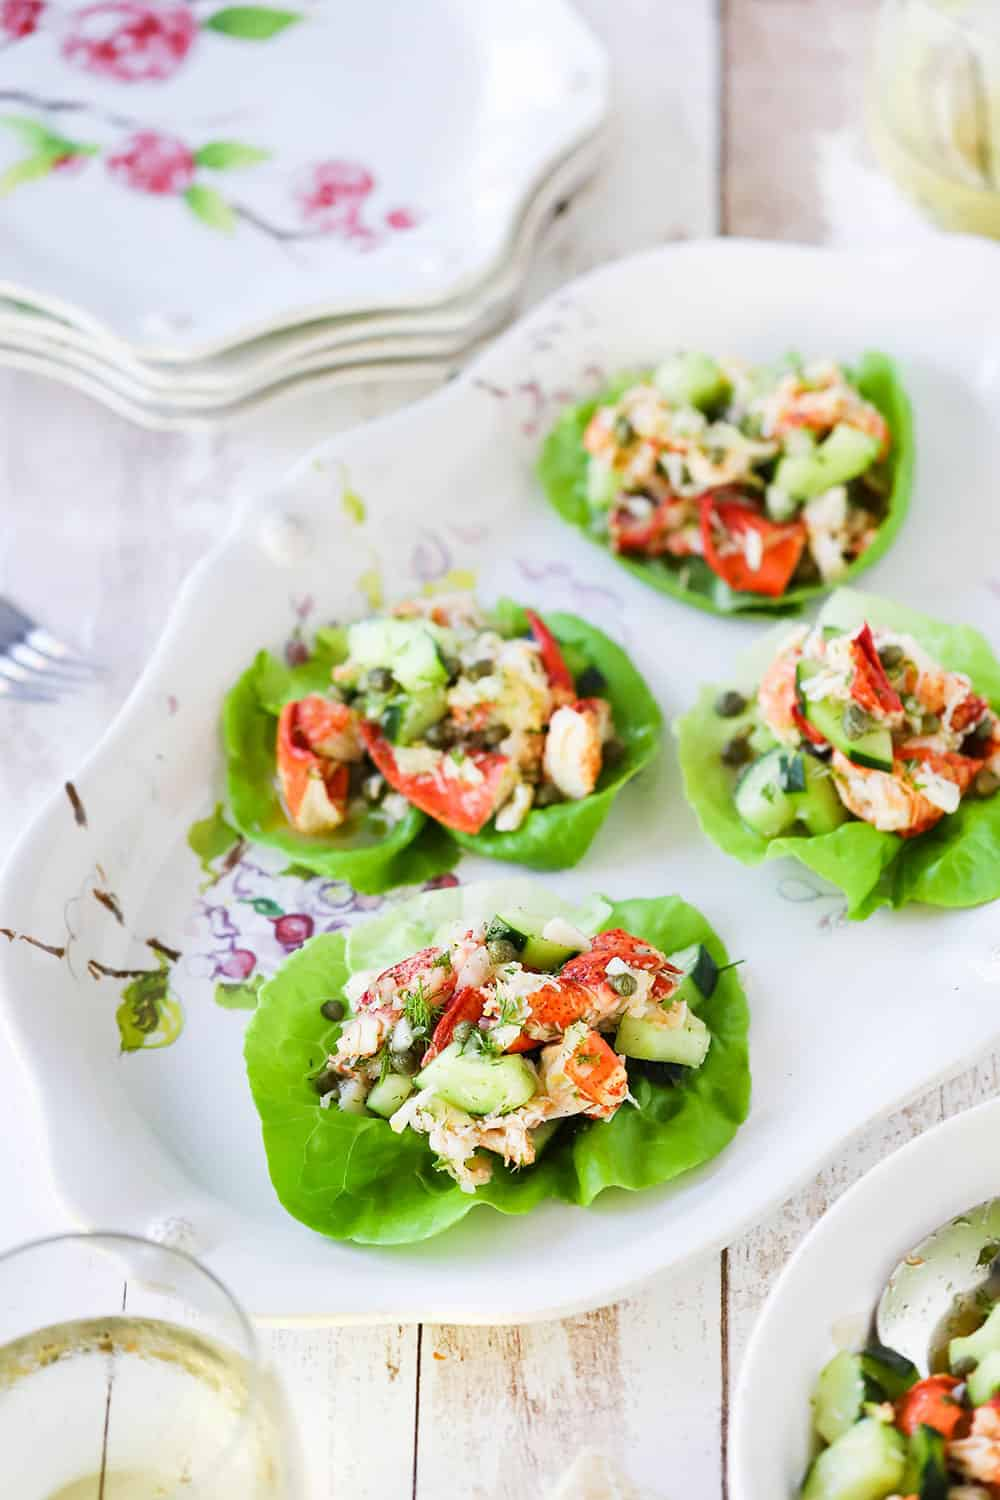 A large decorative platter filled with 4 lettuce leafs topped with a lobster salad with cucumbers and herbs.